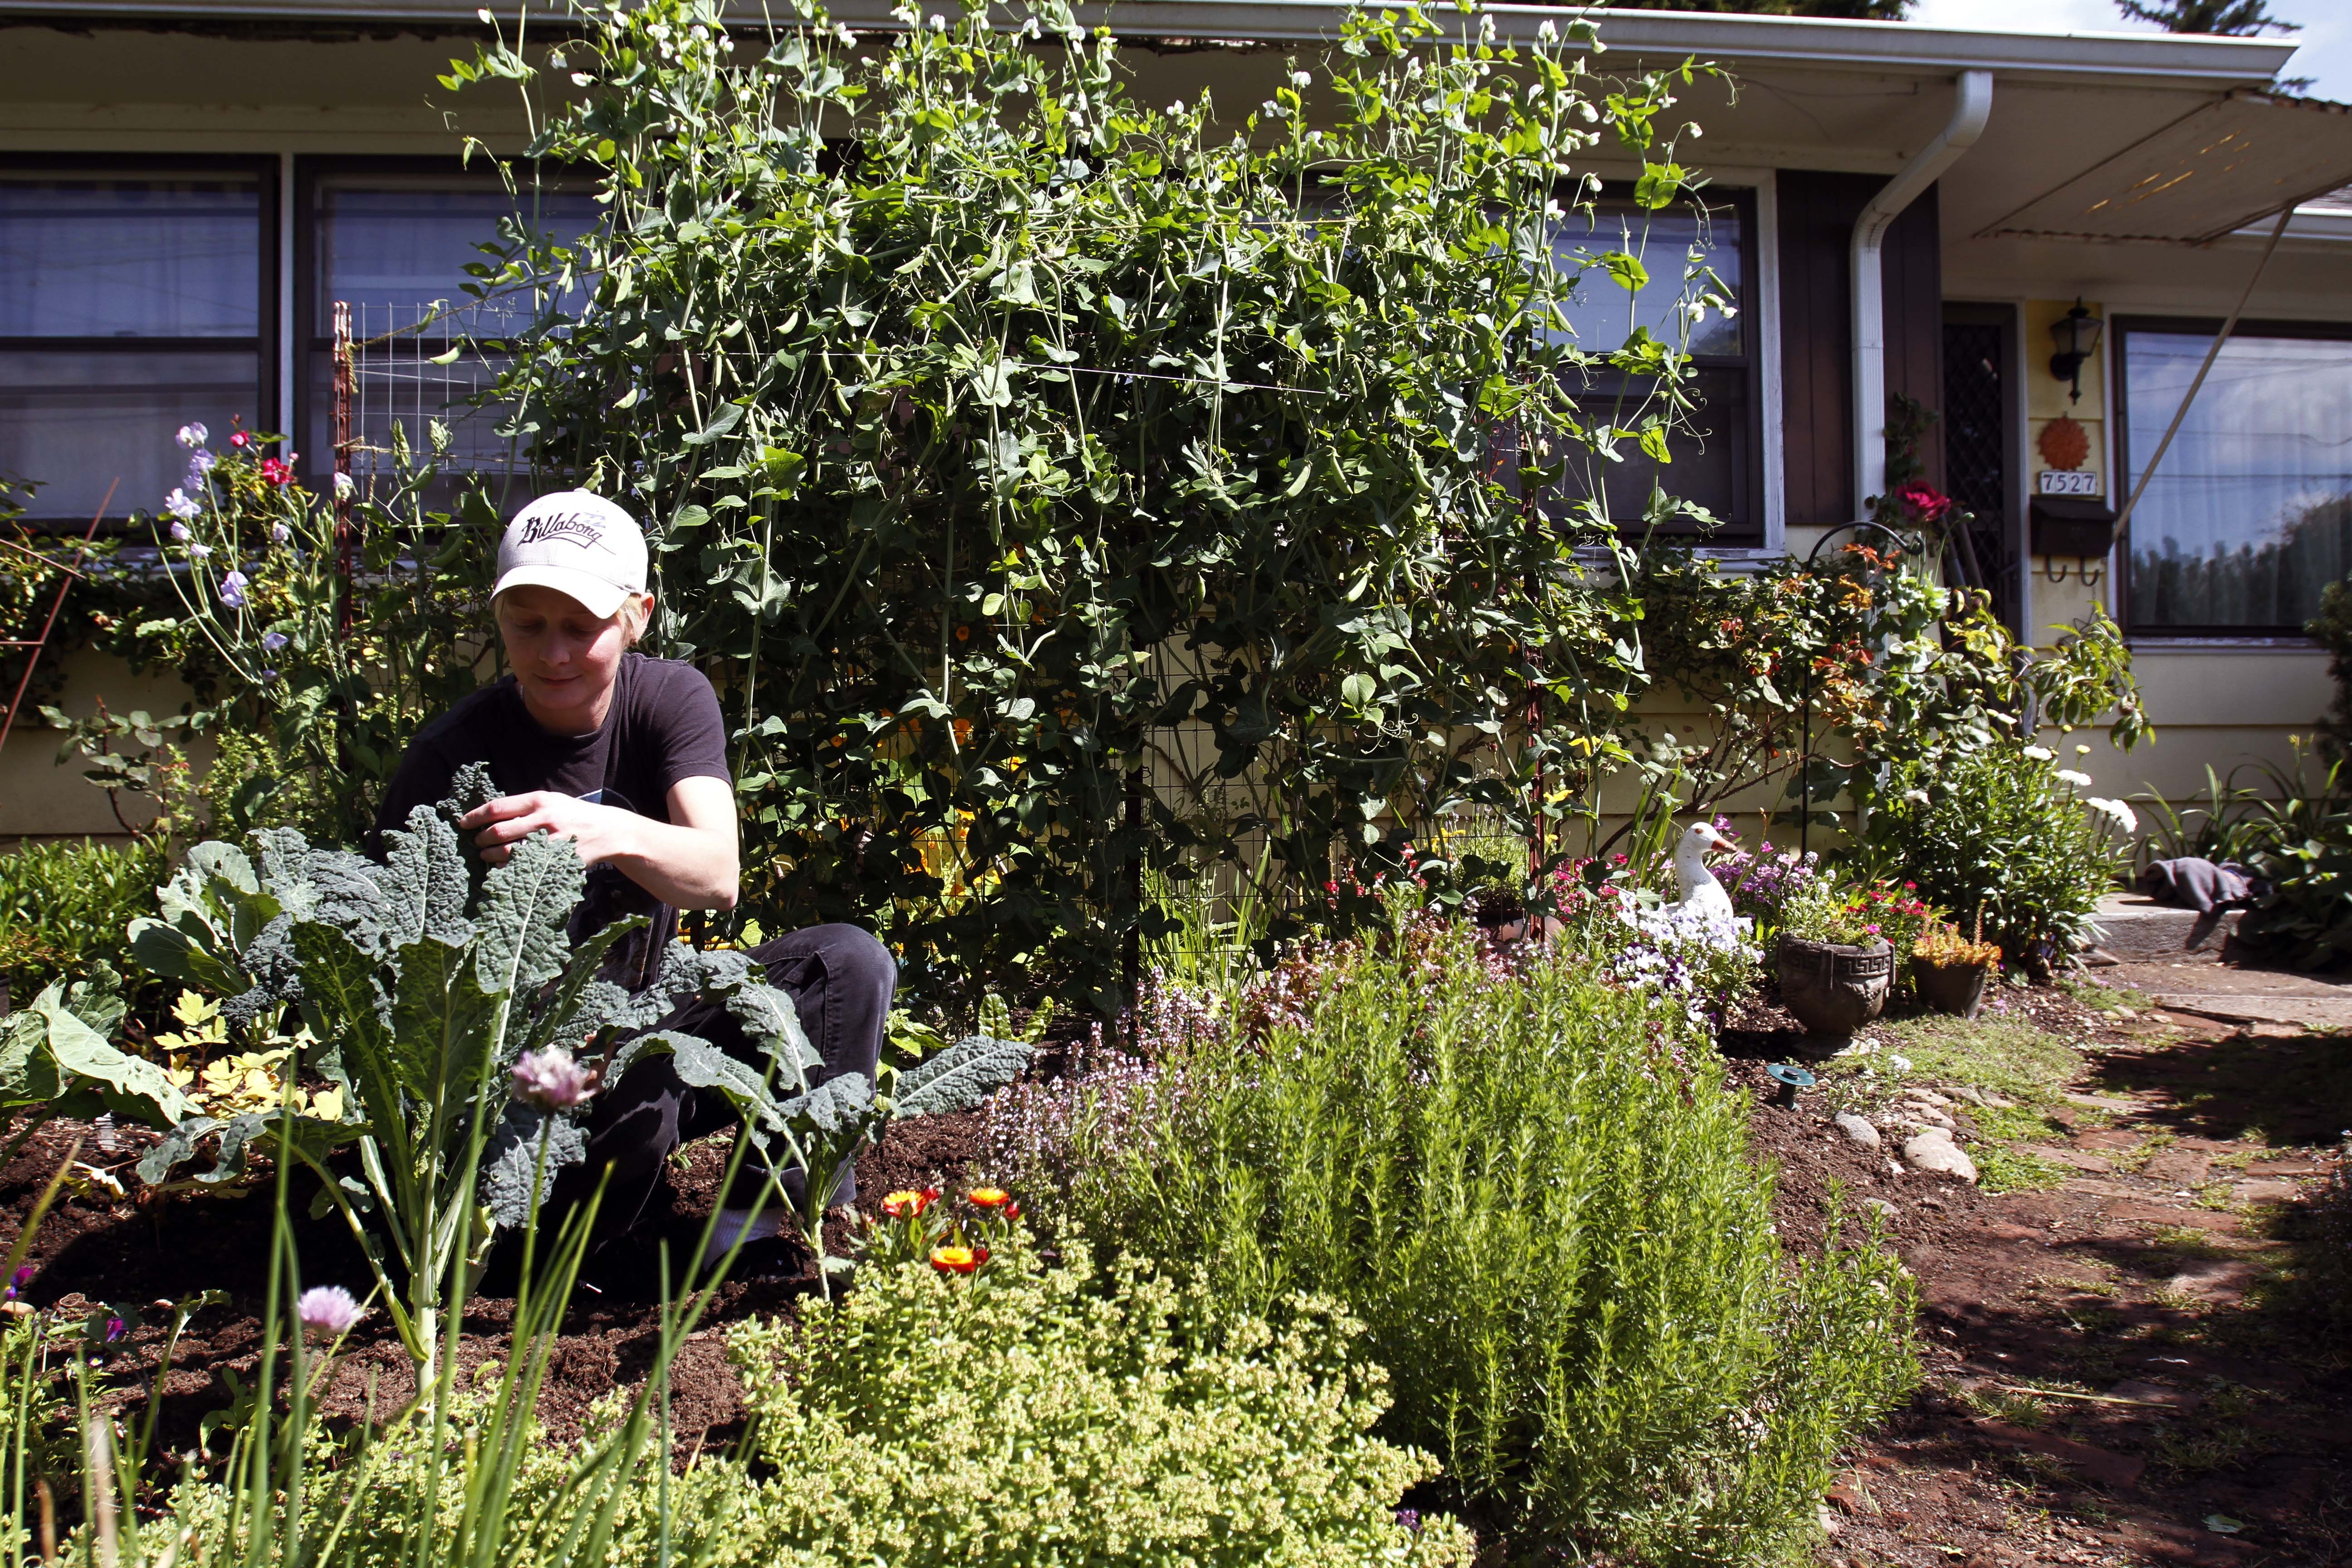 From vegetables to chickens, backyard farming on the rise